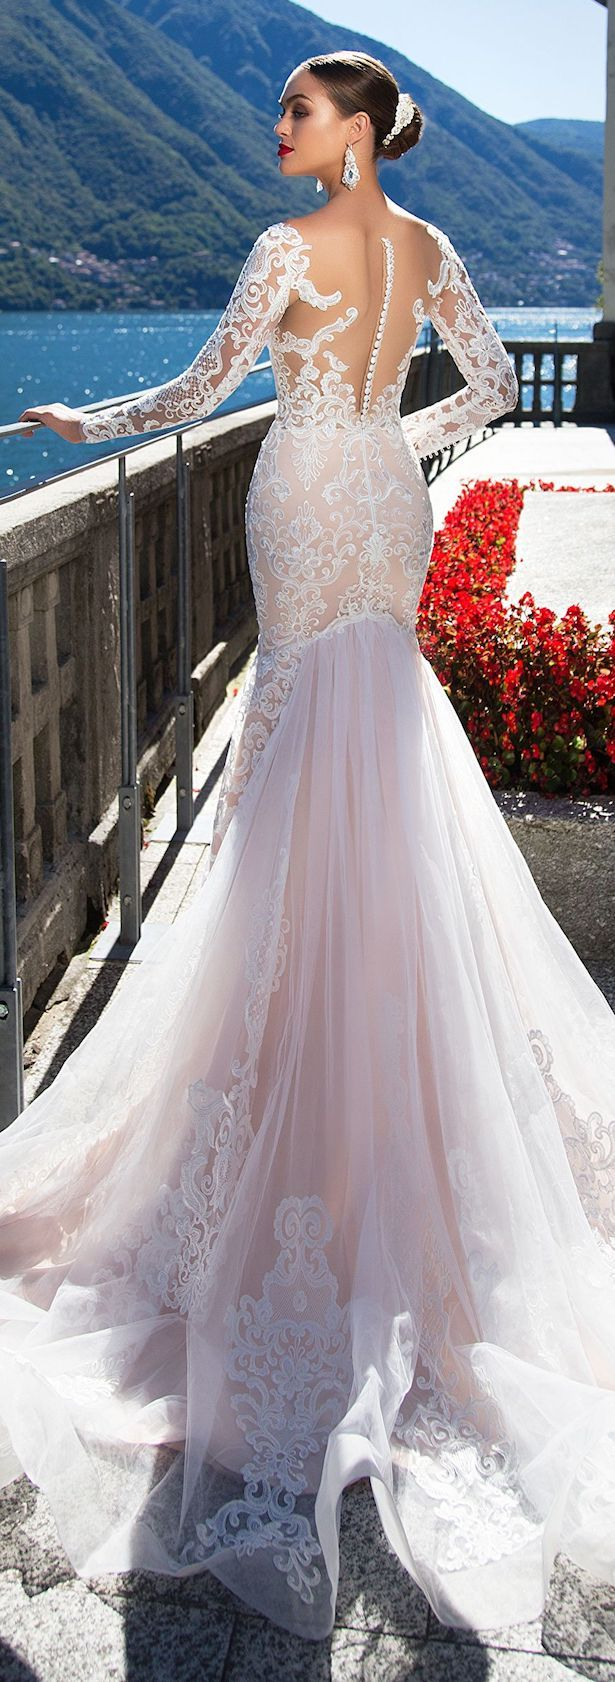 best wedding dresses images on pinterest wedding frocks short